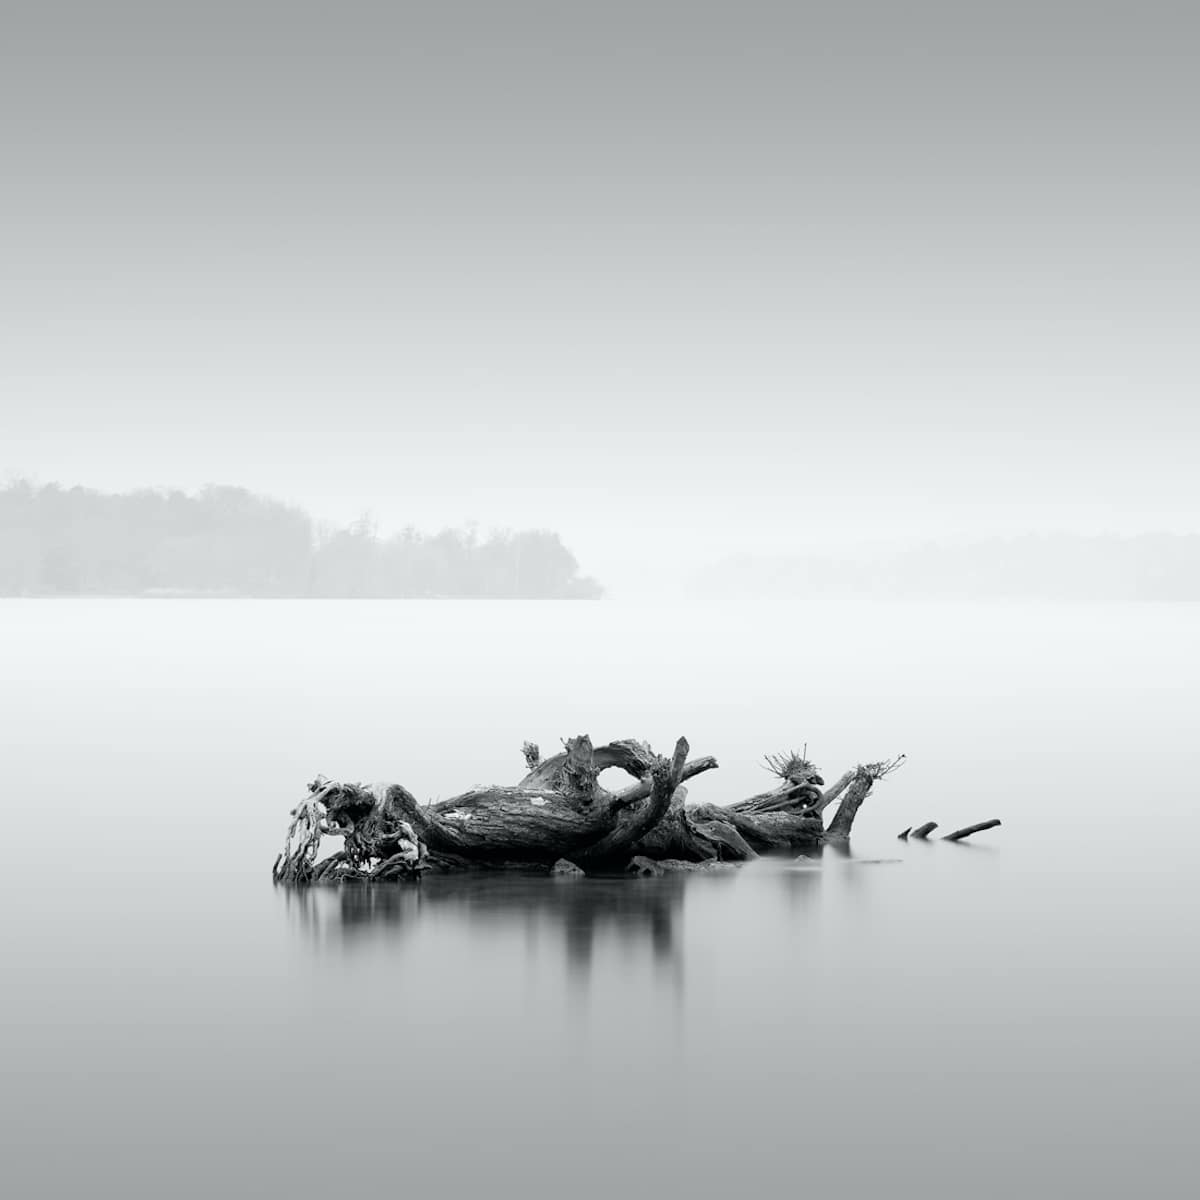 Minimalism Magazine Black and White Photography Contest